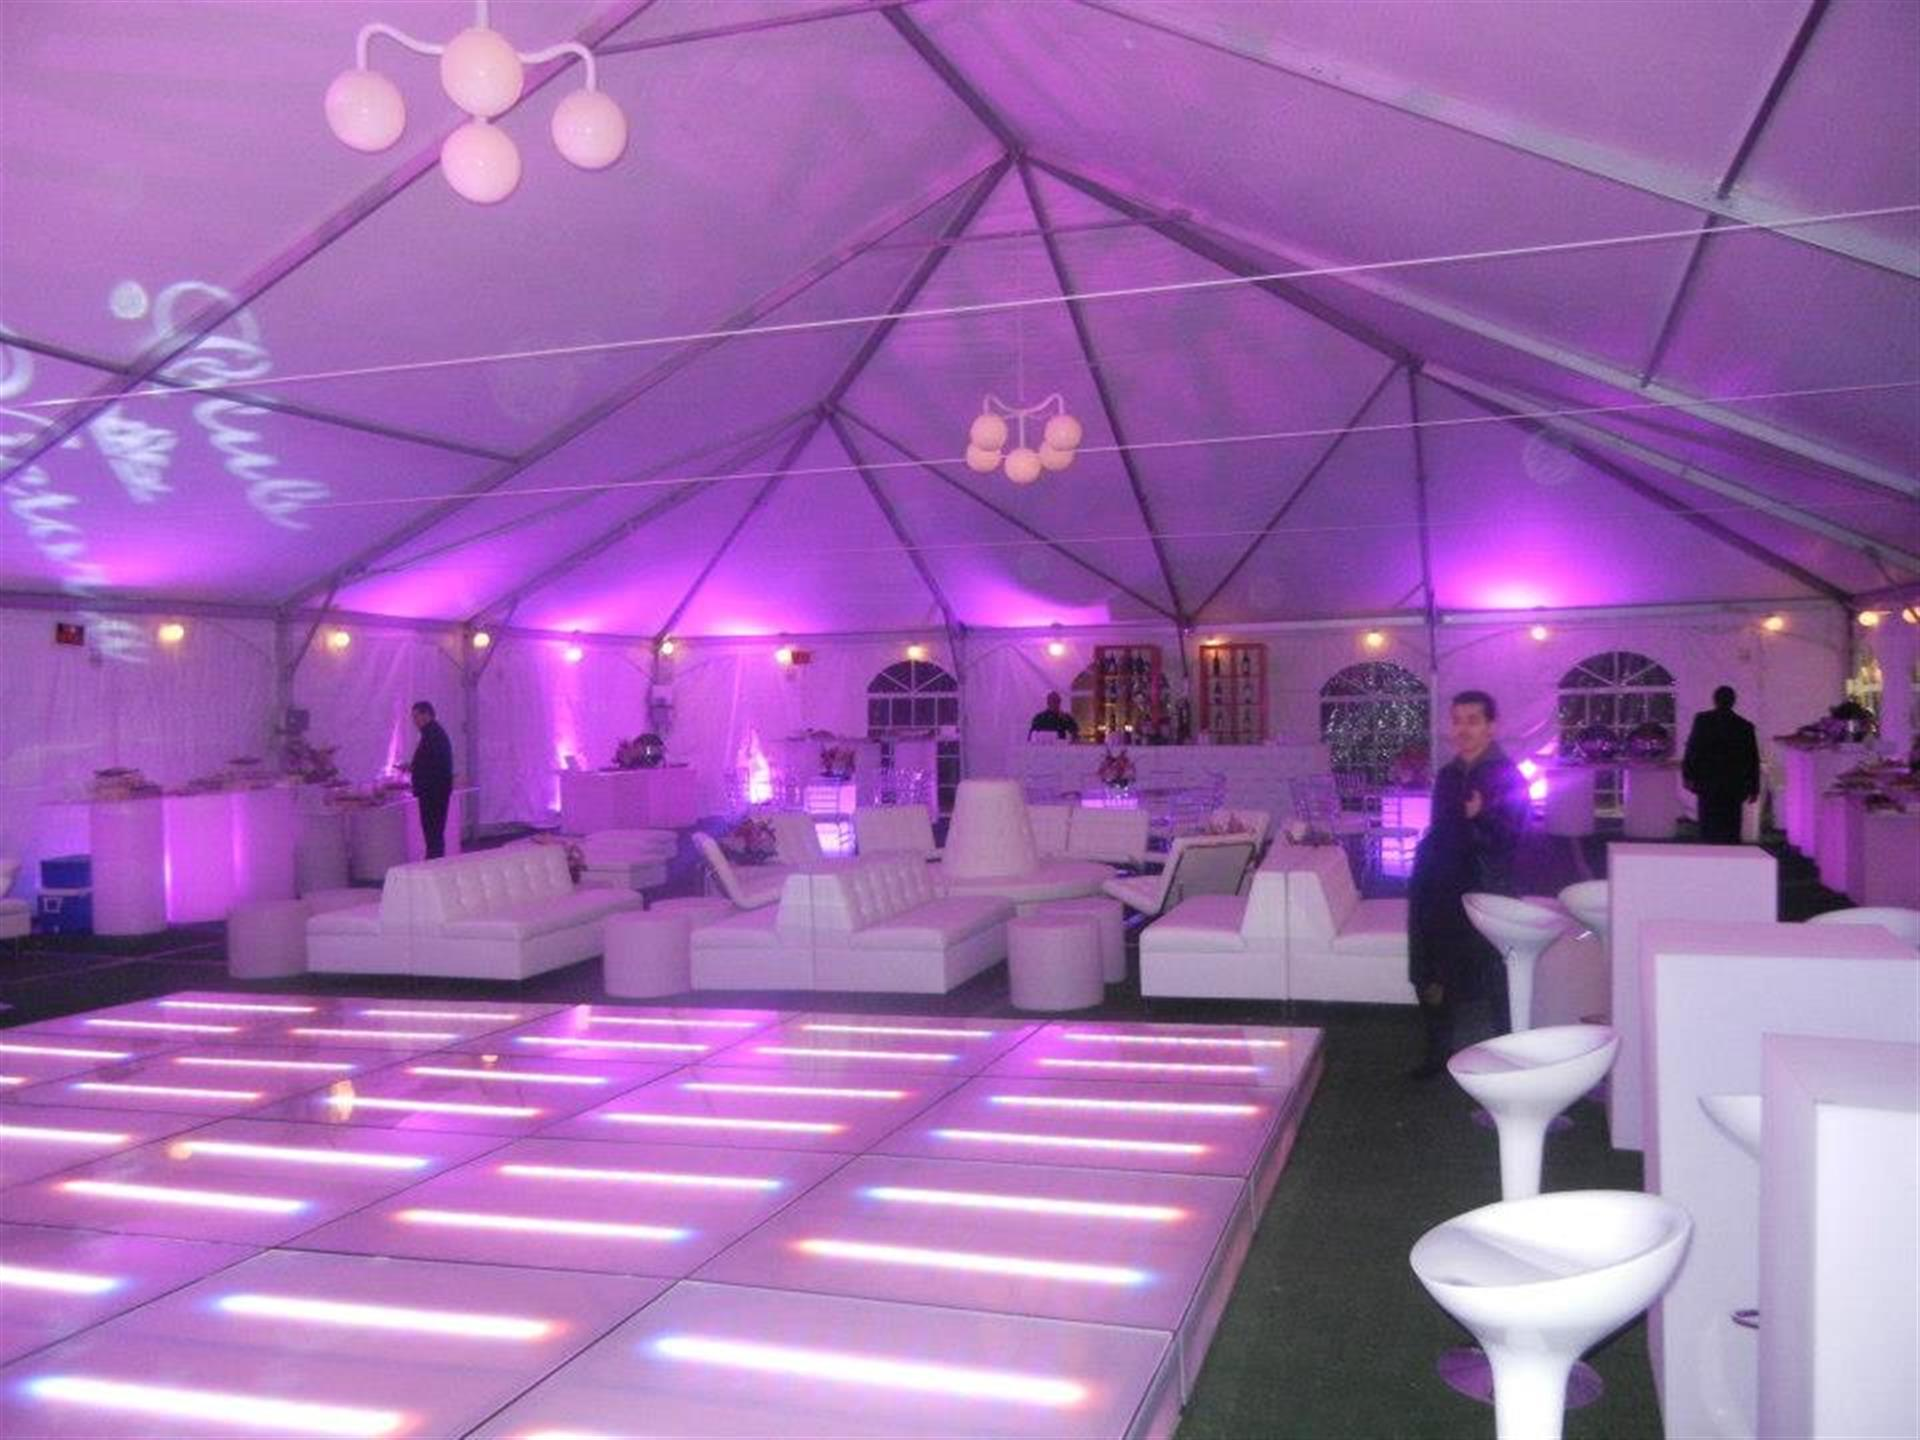 Dance floor and seating under purple-lit tent